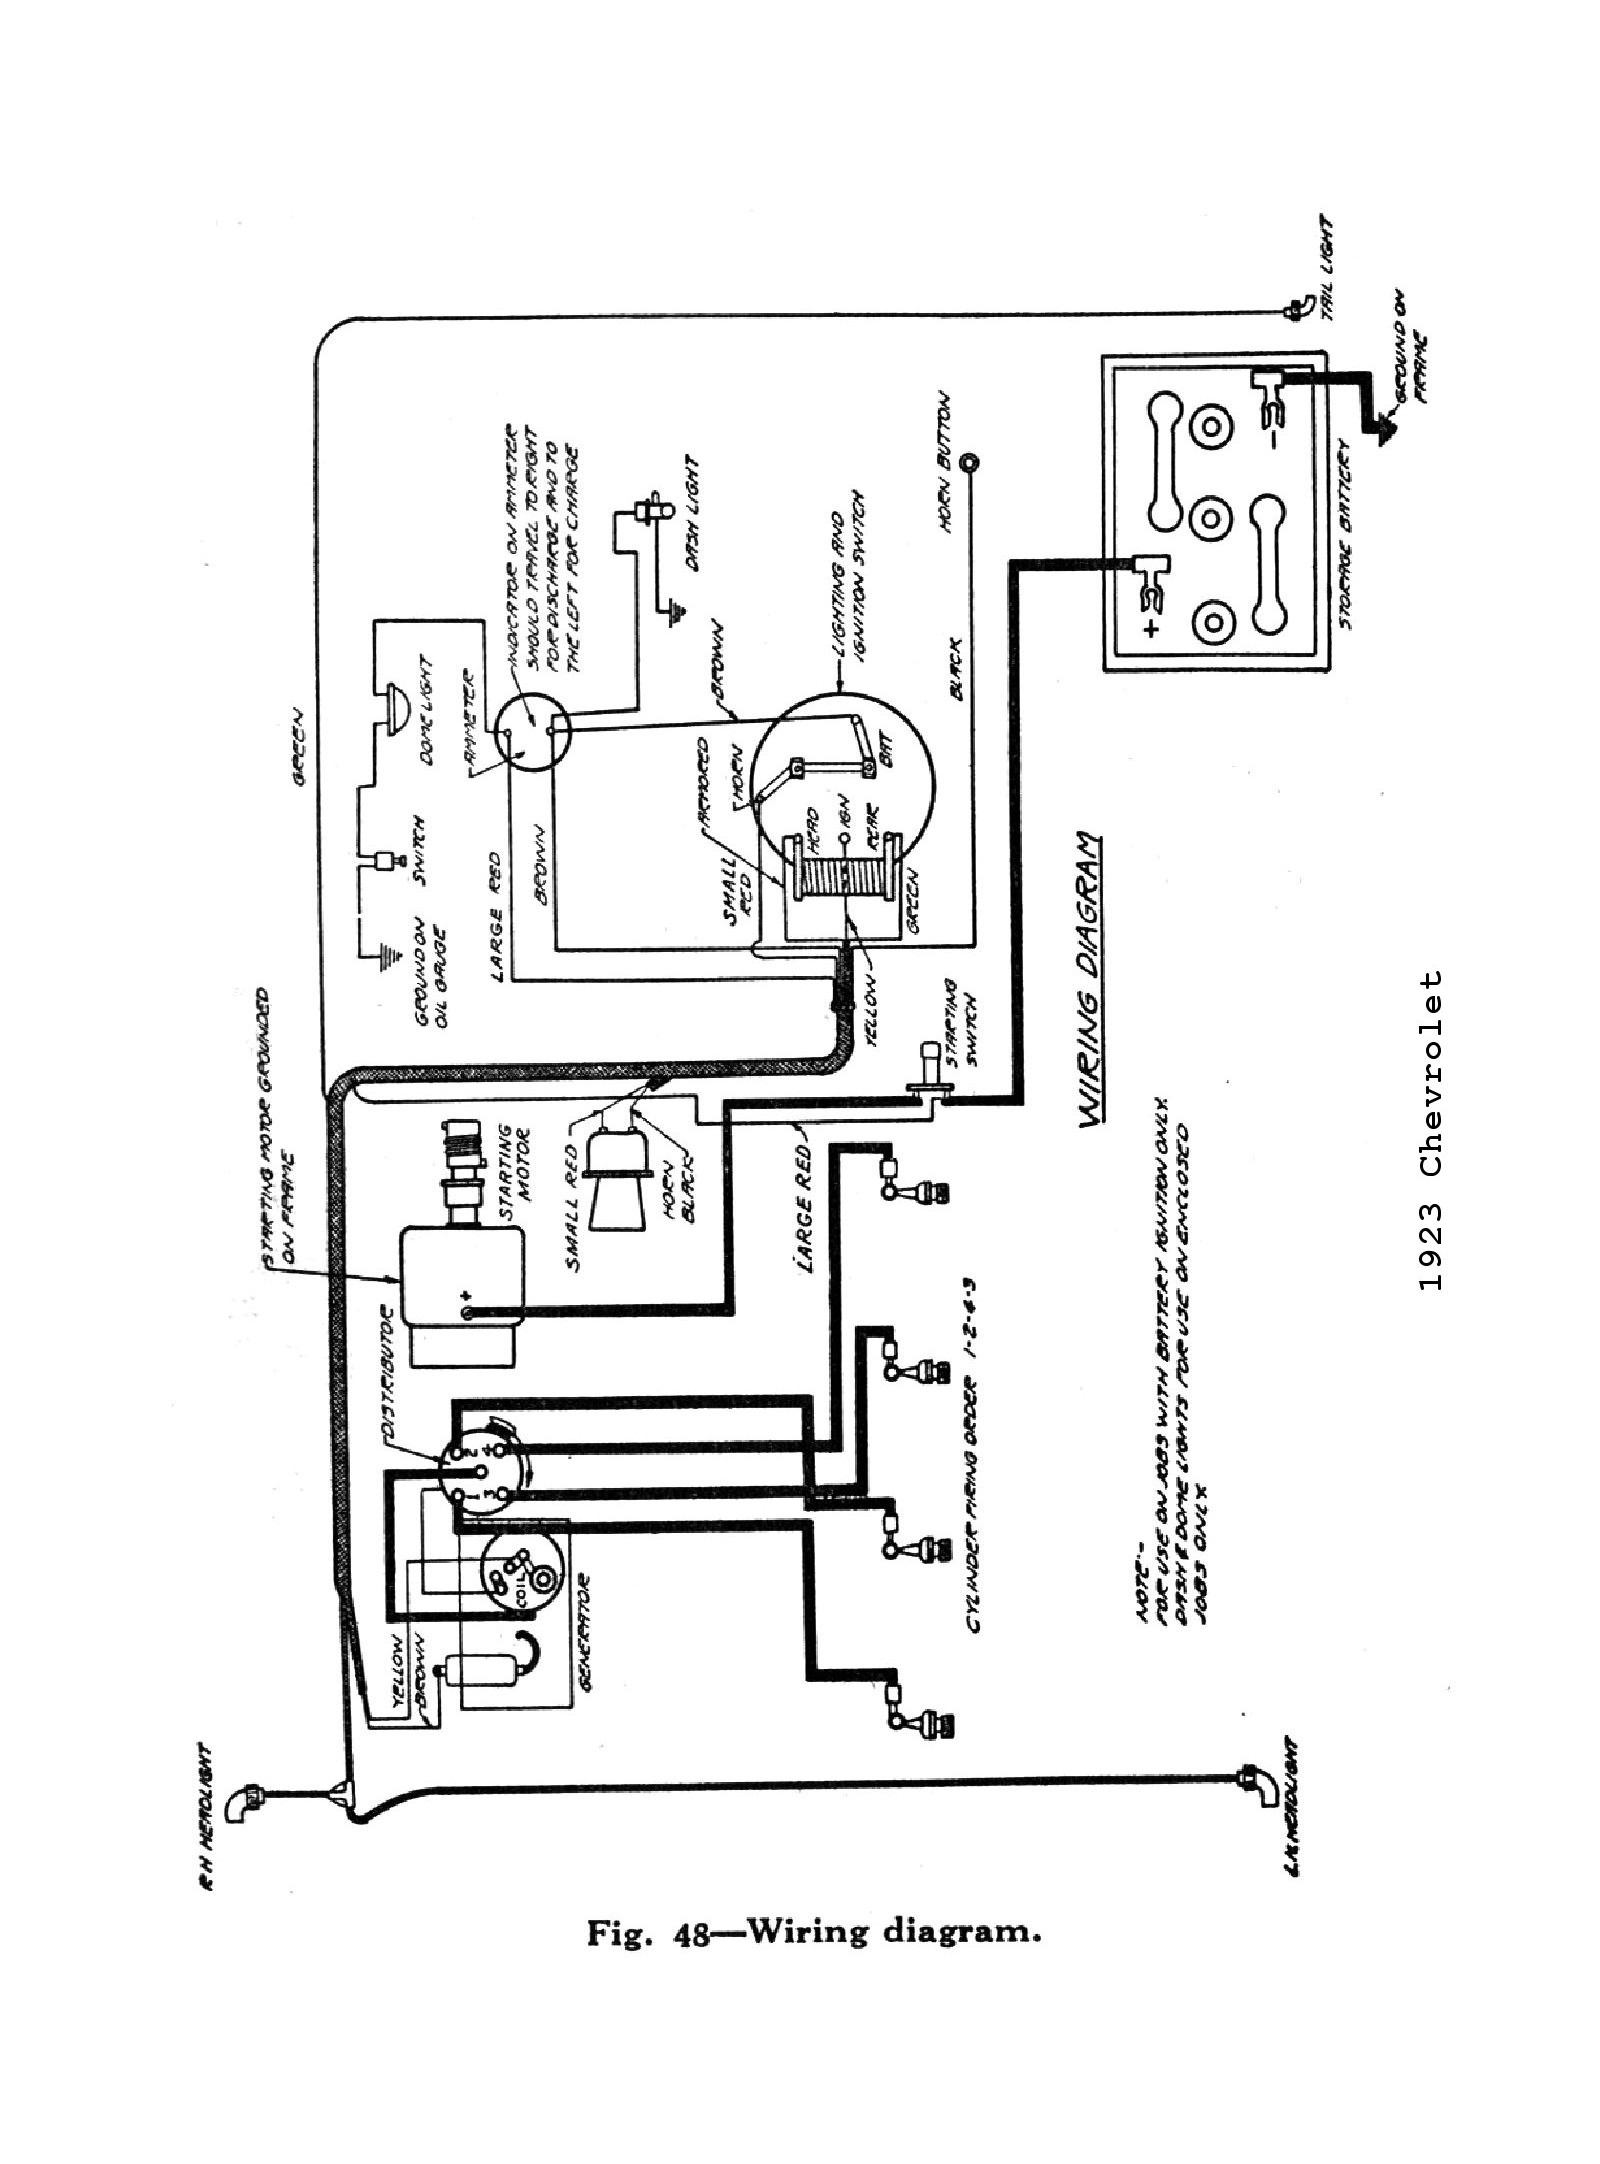 Chevy wiring diagrams 1923 general wiring swarovskicordoba Image collections